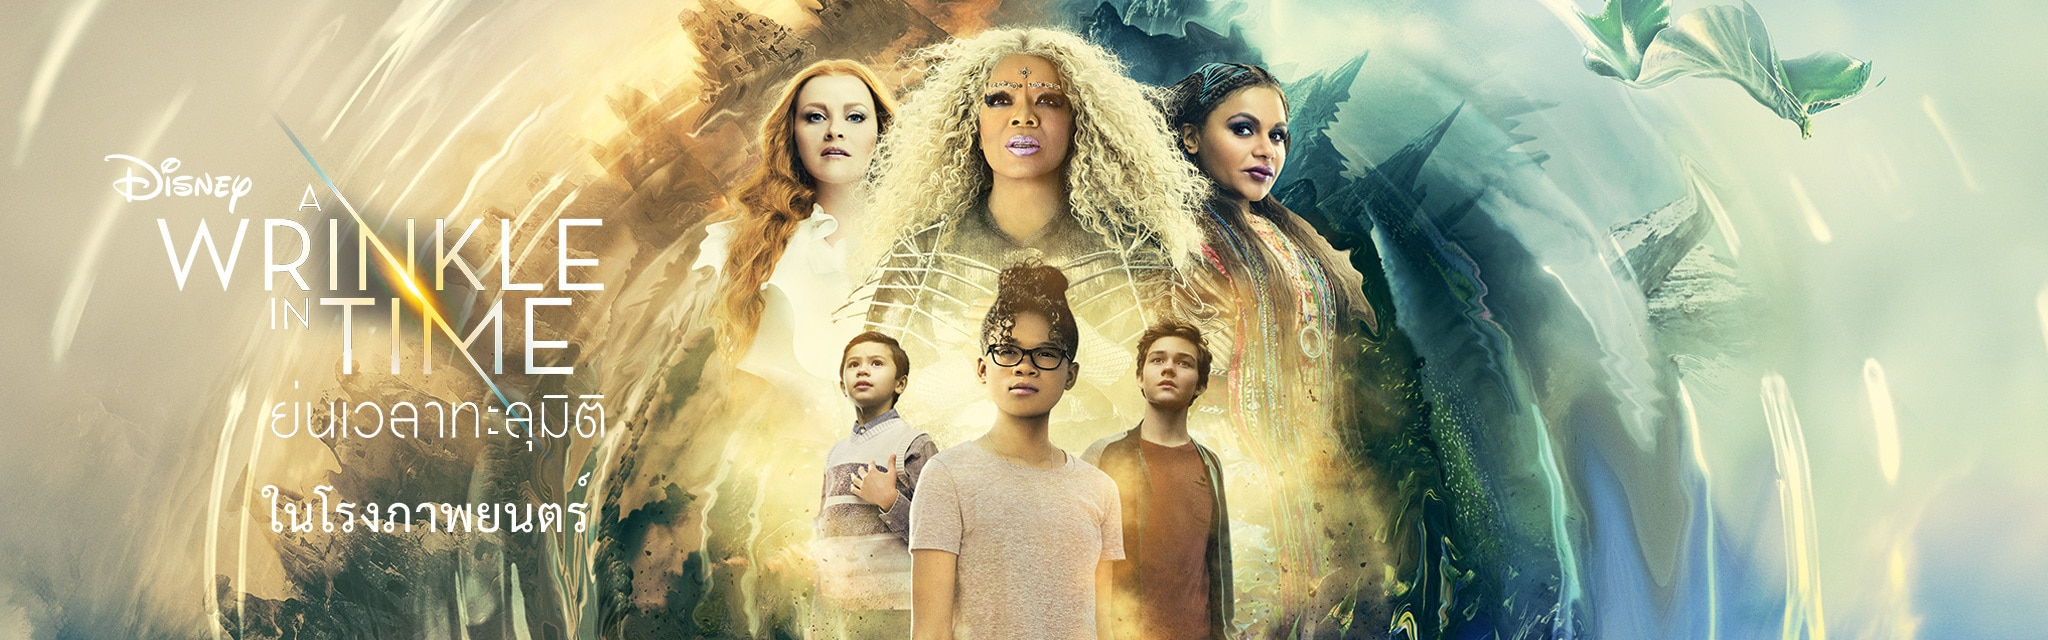 A Wrinkle In Time - Coming Soon